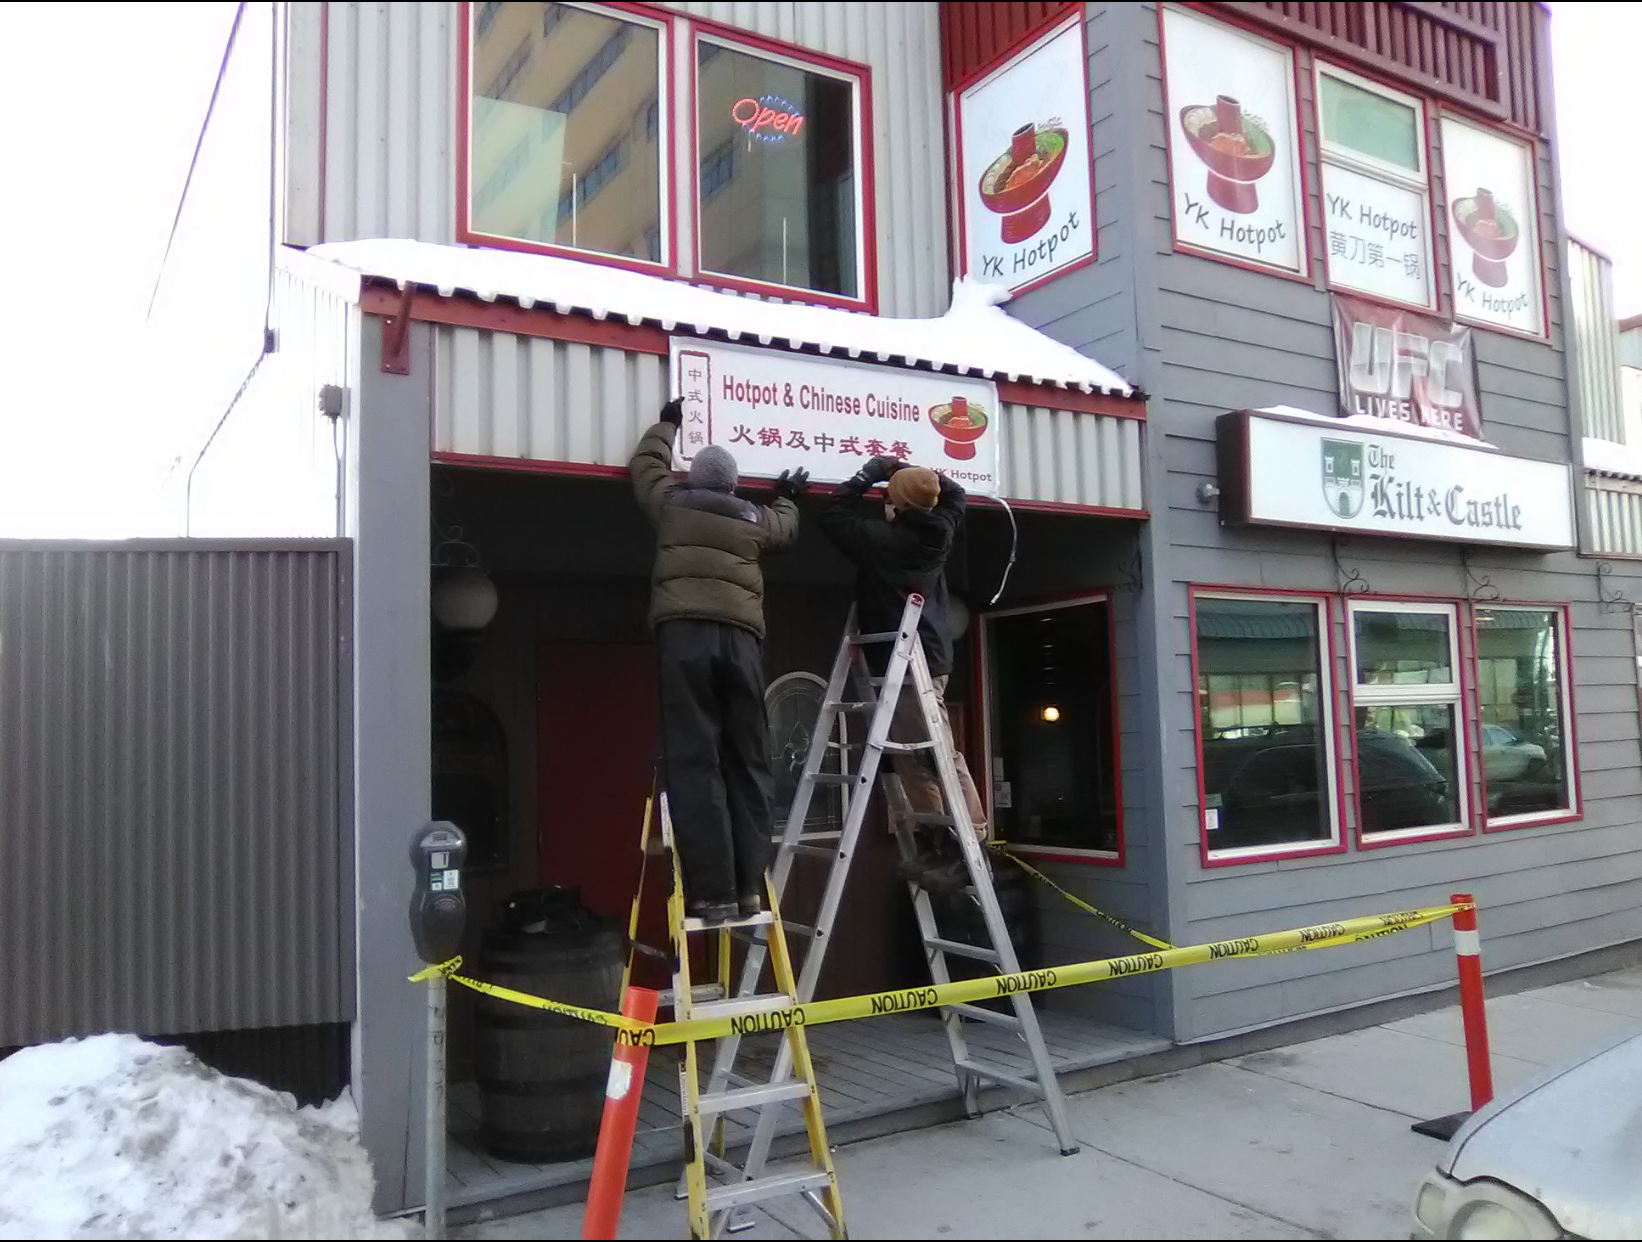 Exterior store signage and backlit sign for Yellowknife restaurant.